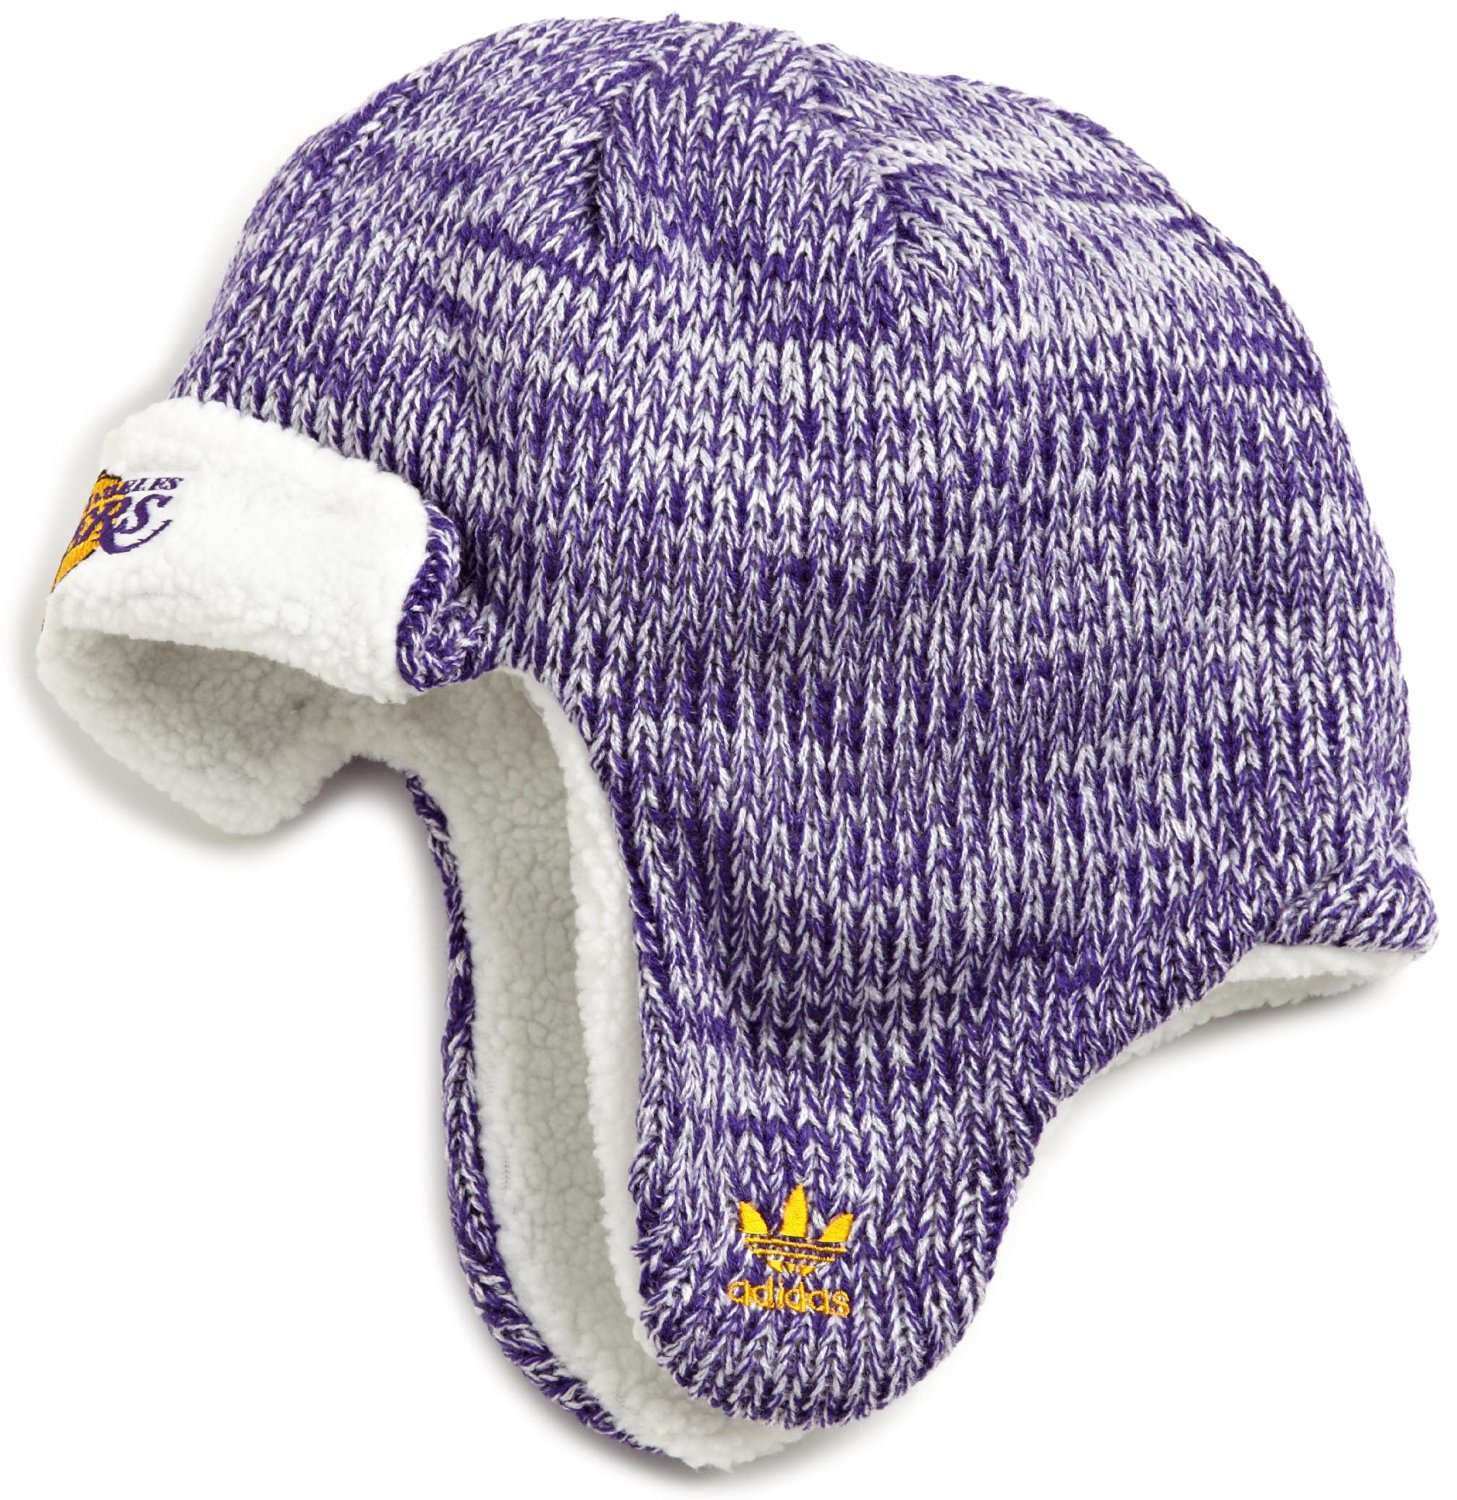 b108570bbb3 Get Quotations · NBA Trooper Knit Hat - Ke84Z, Los Angeles Lakers, One Size  , Los Angeles